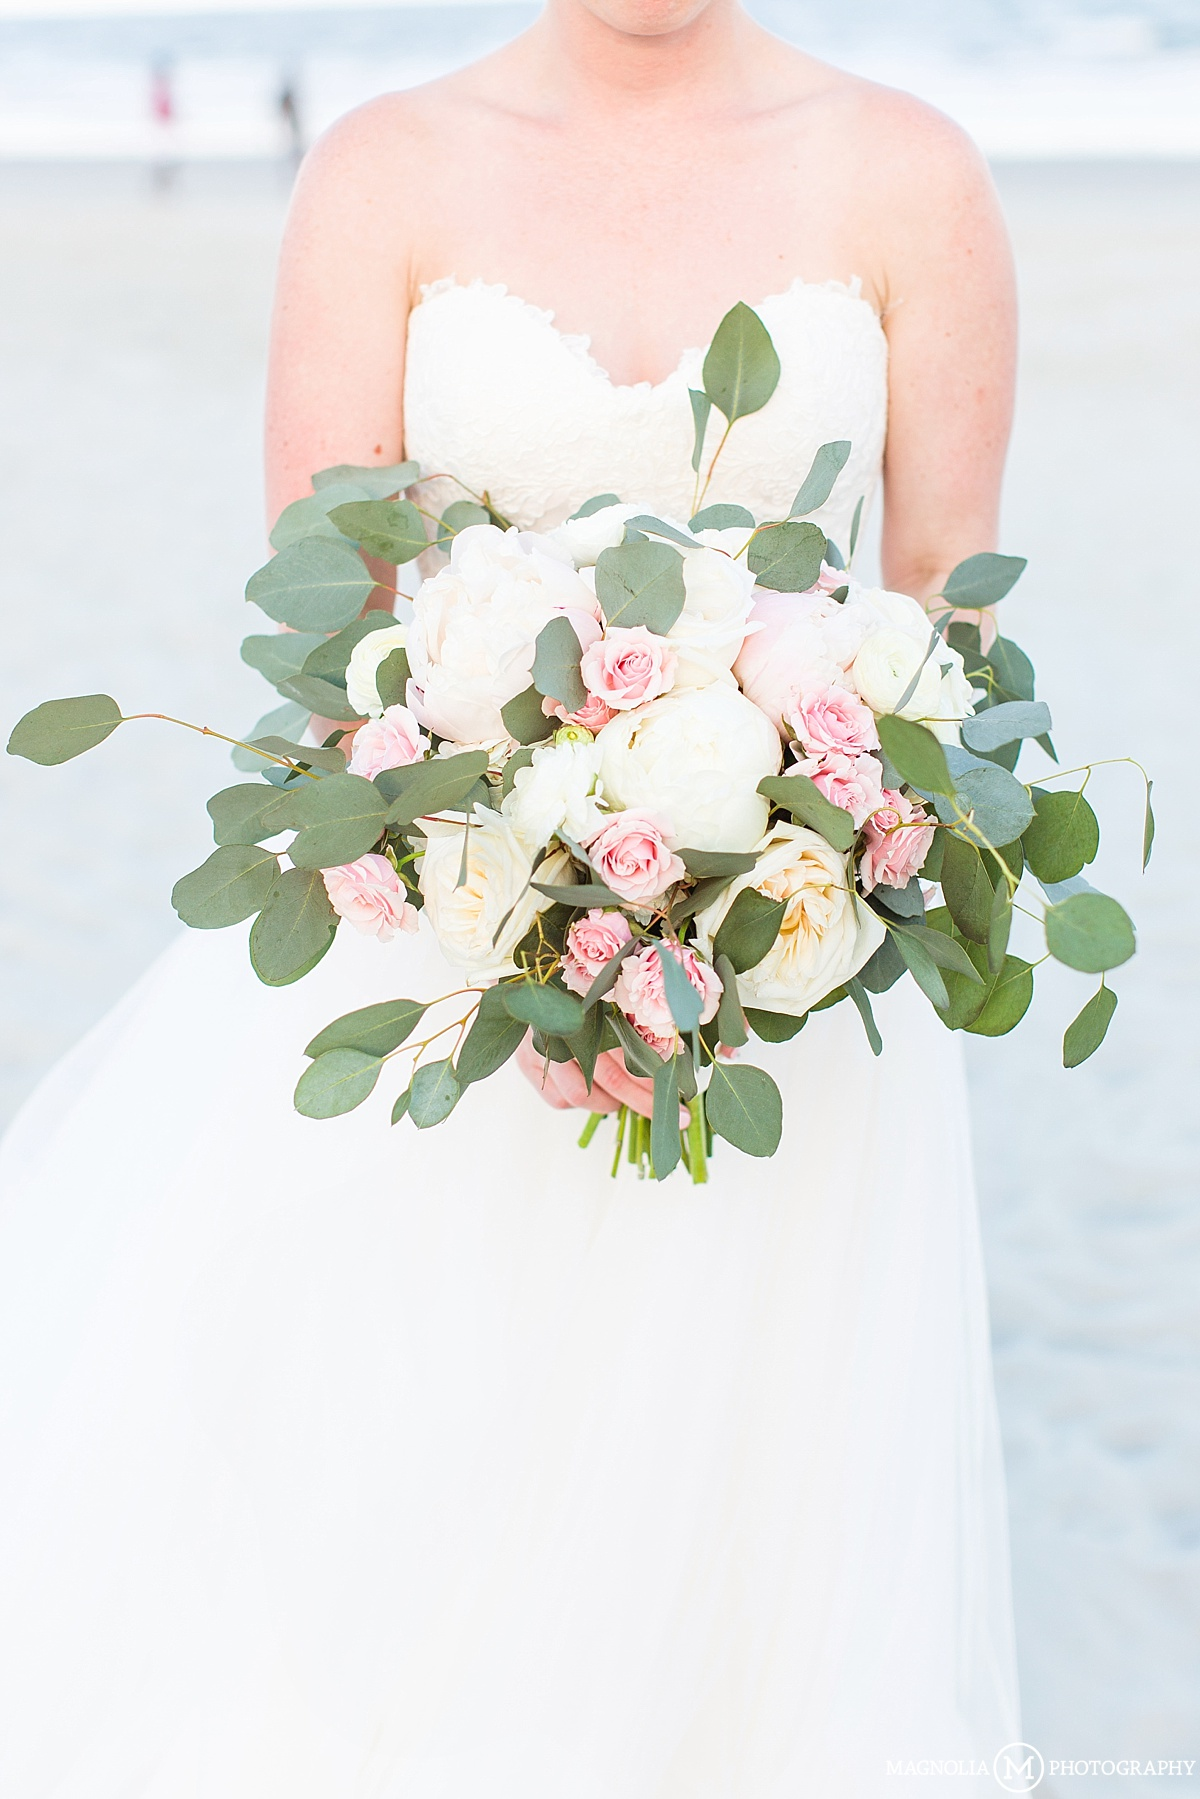 Silver Dollar and Peonies Bouquets